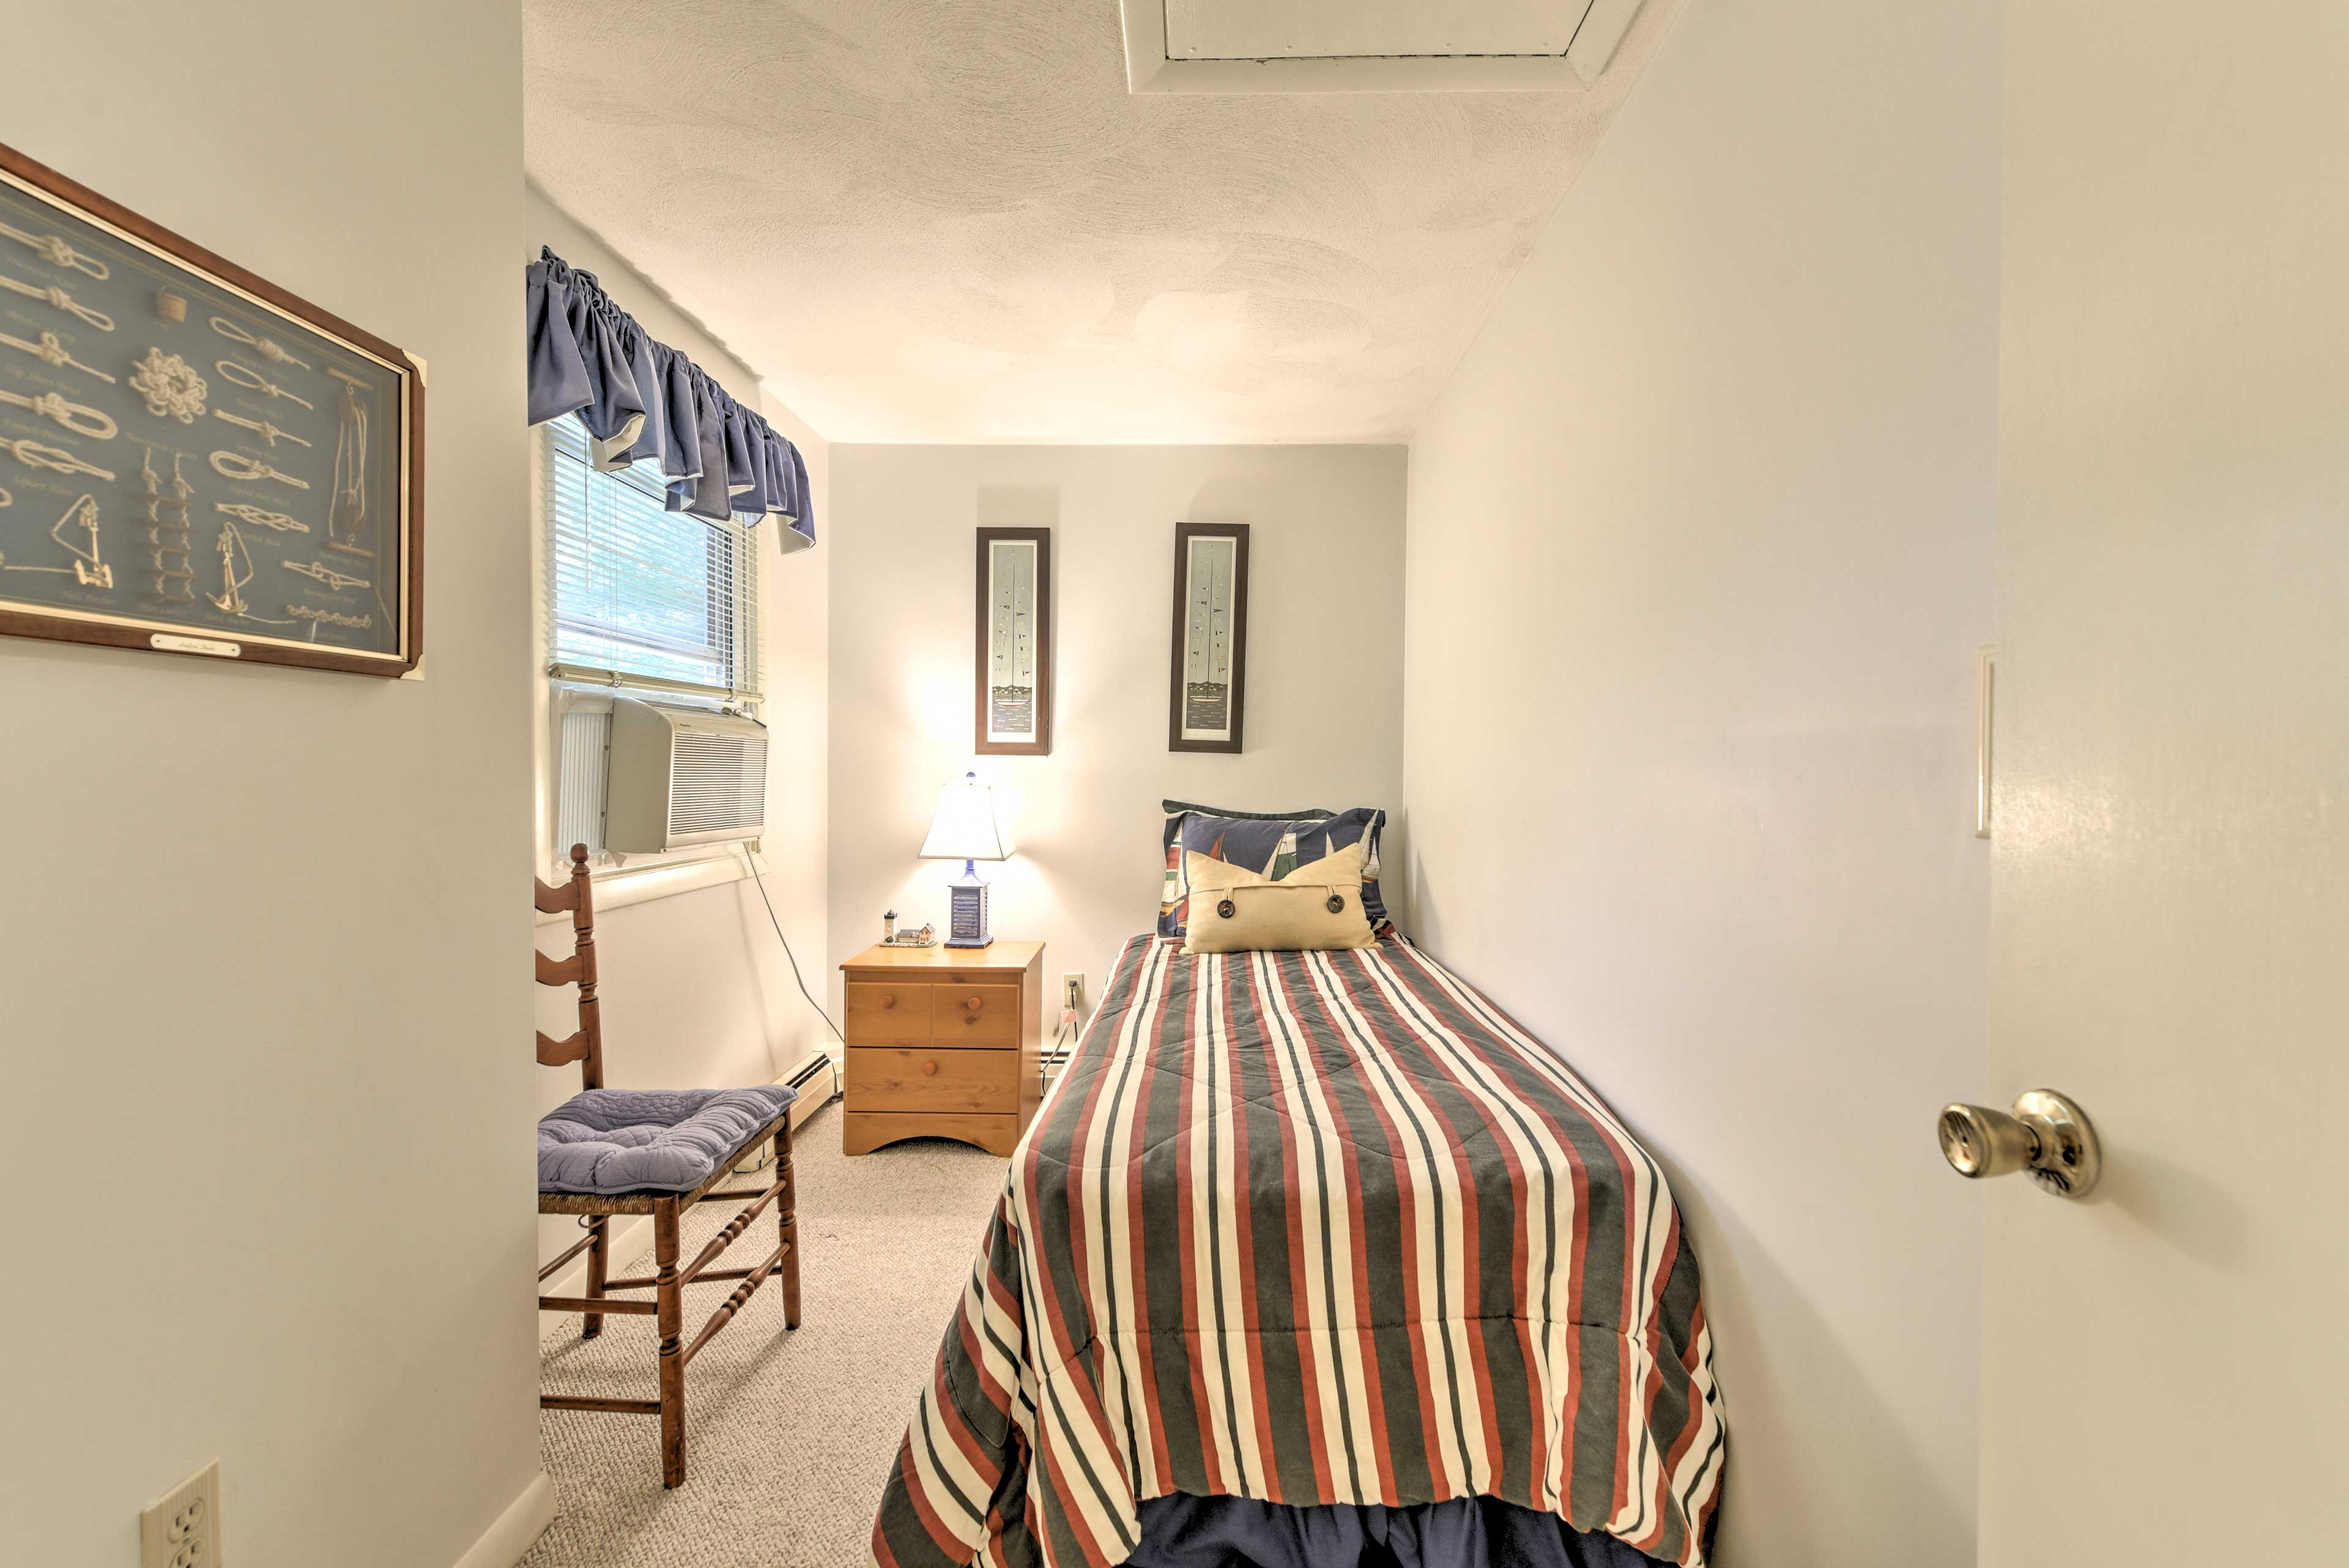 Sweet dreams await on this quaint twin bed!